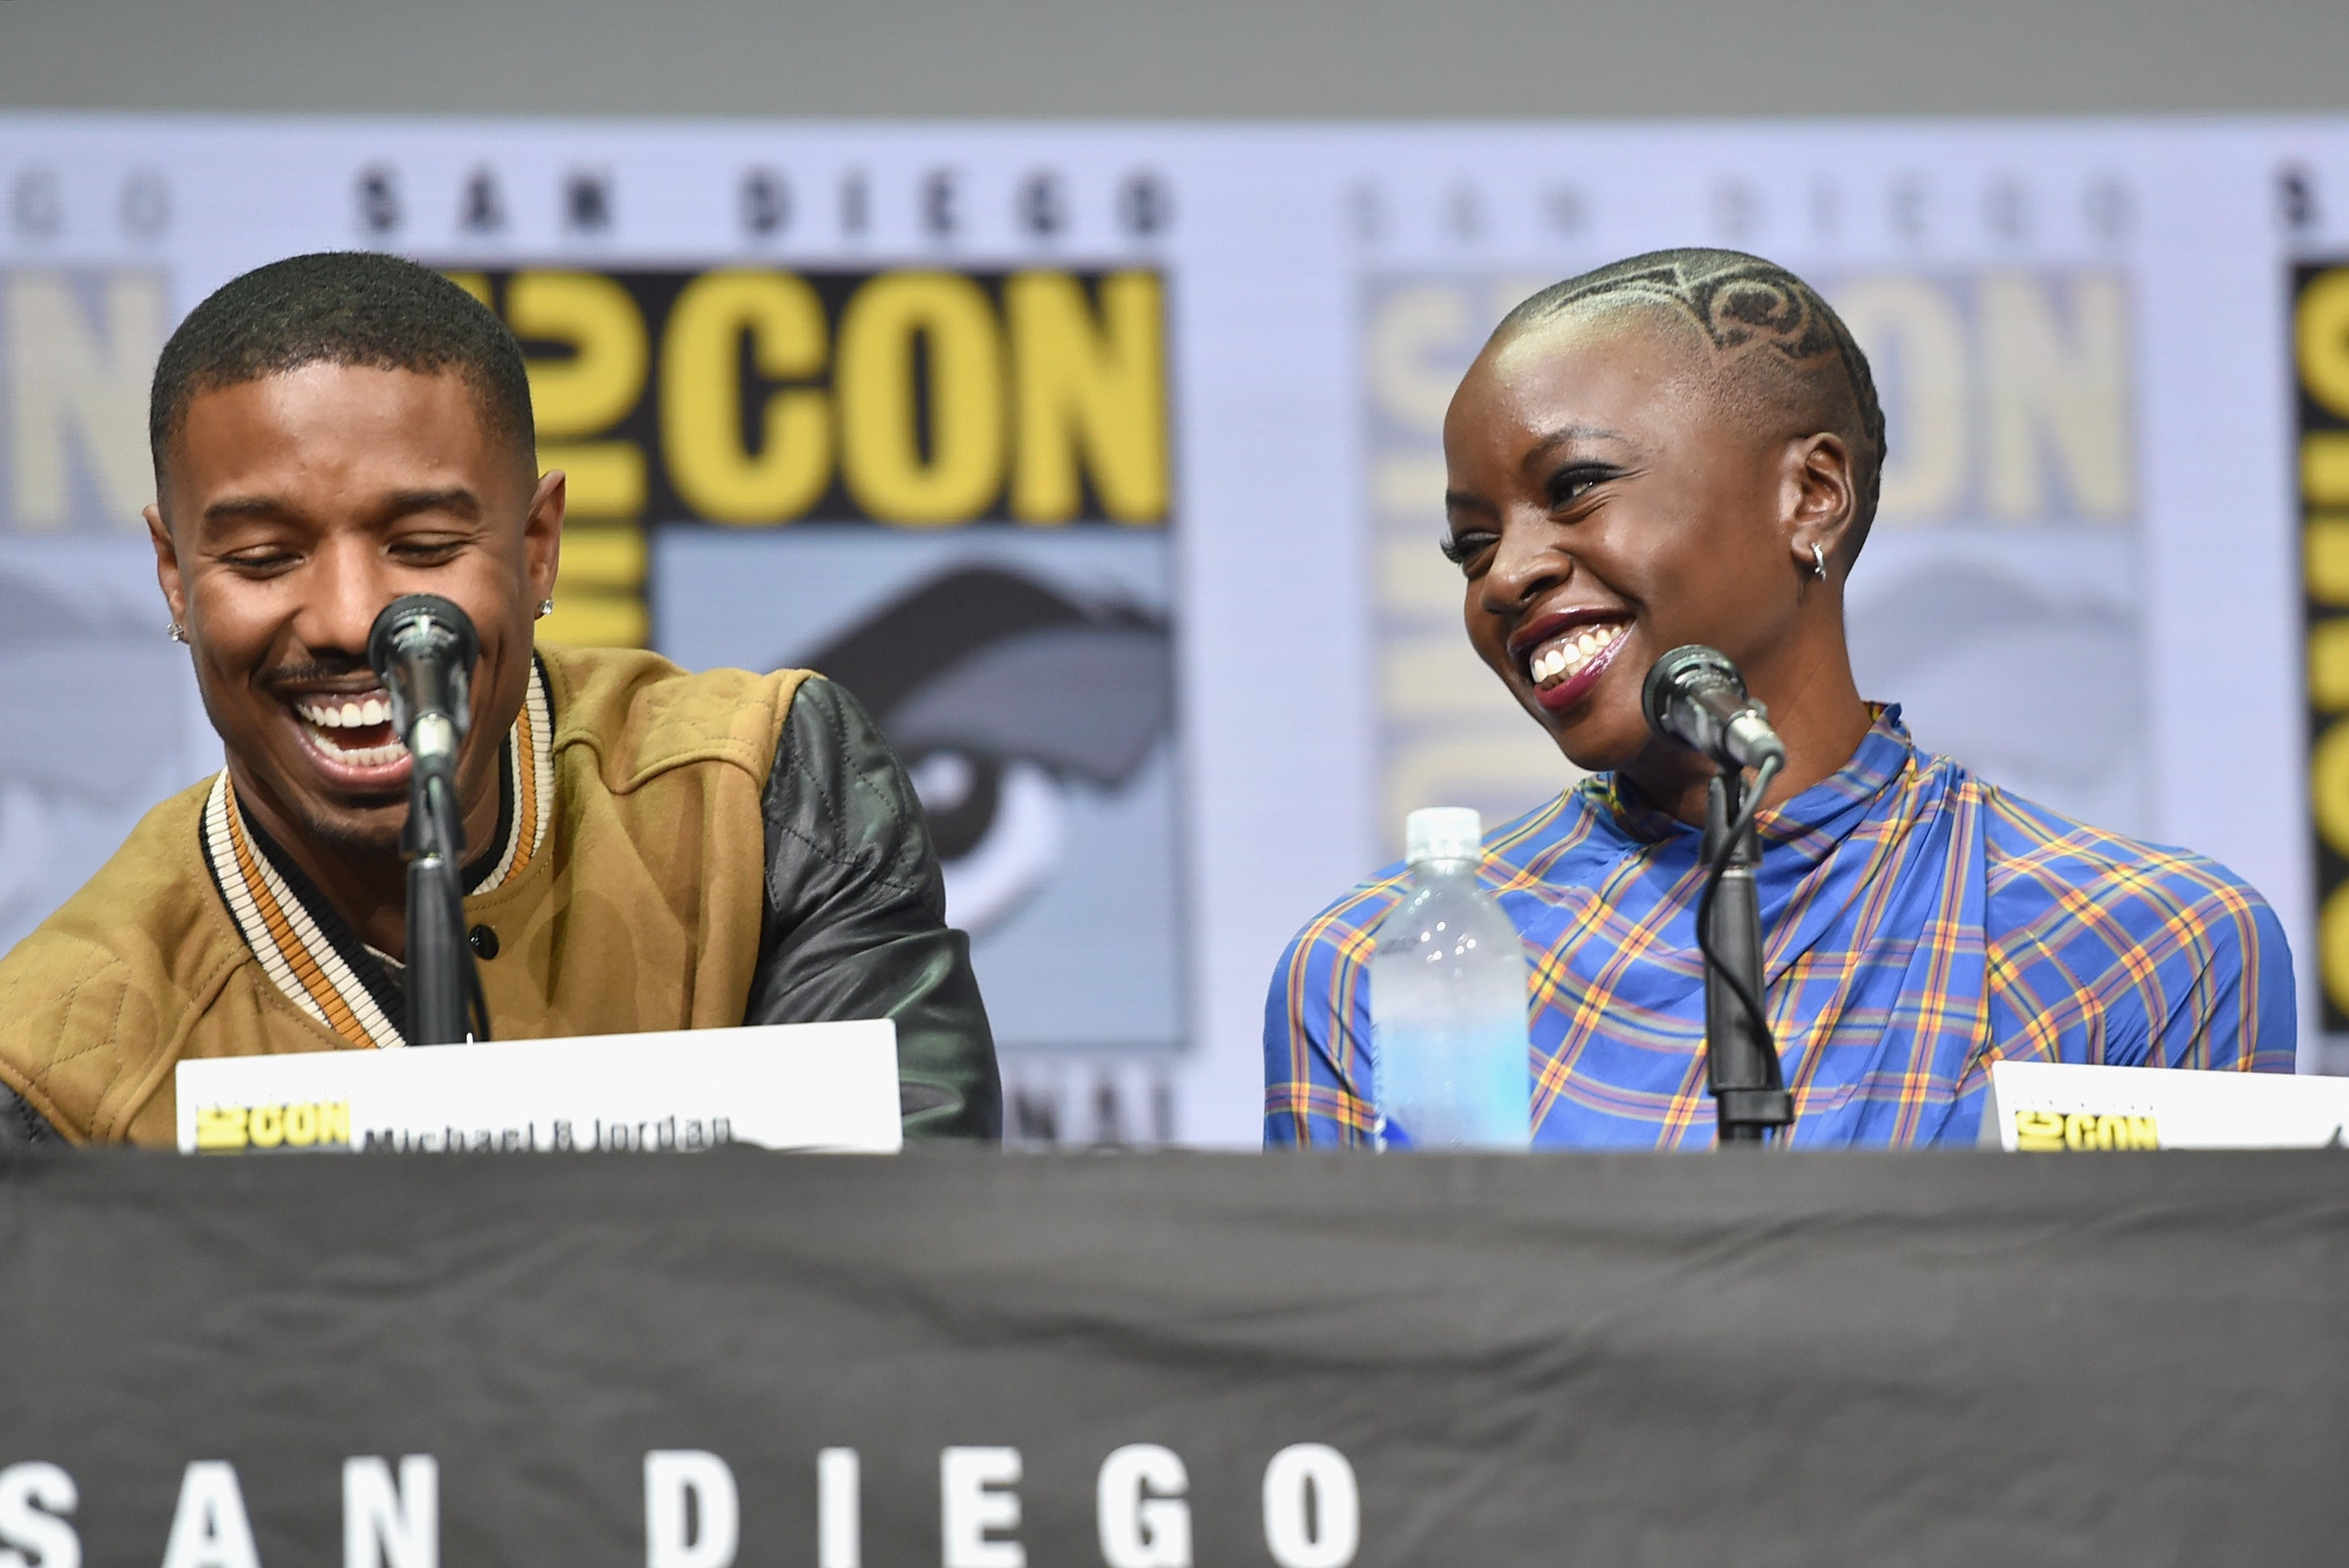 Here's What Happened In The Emotional Preview Of 'Black Panther' At Comic Con